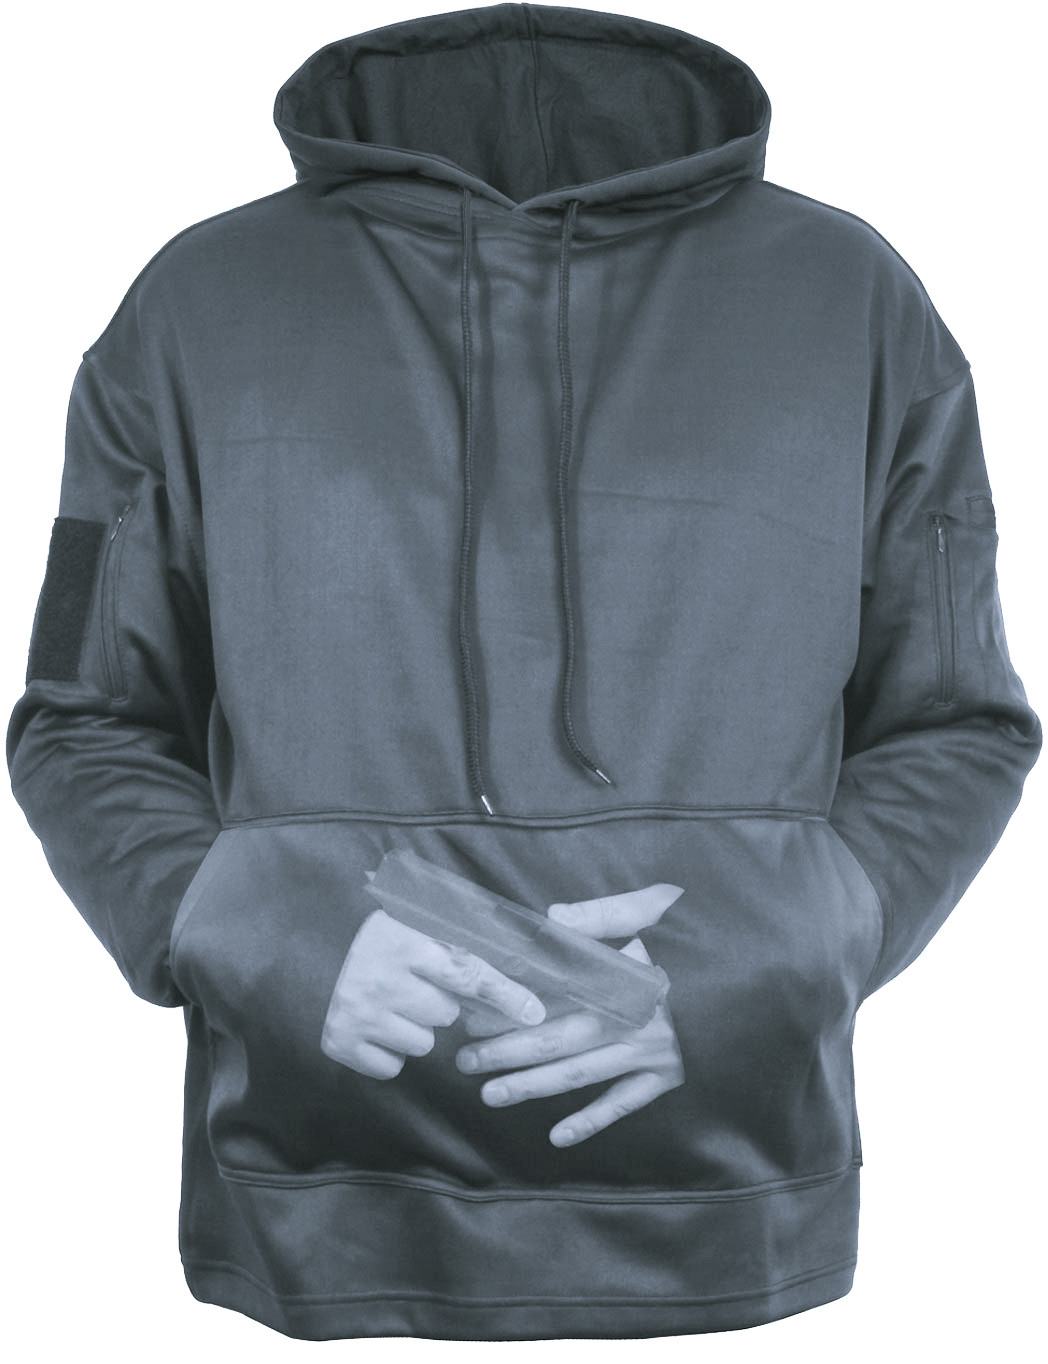 Gun Metal Grey Concealed Carry Tactical Hooded Sweatshirt 0887701d520